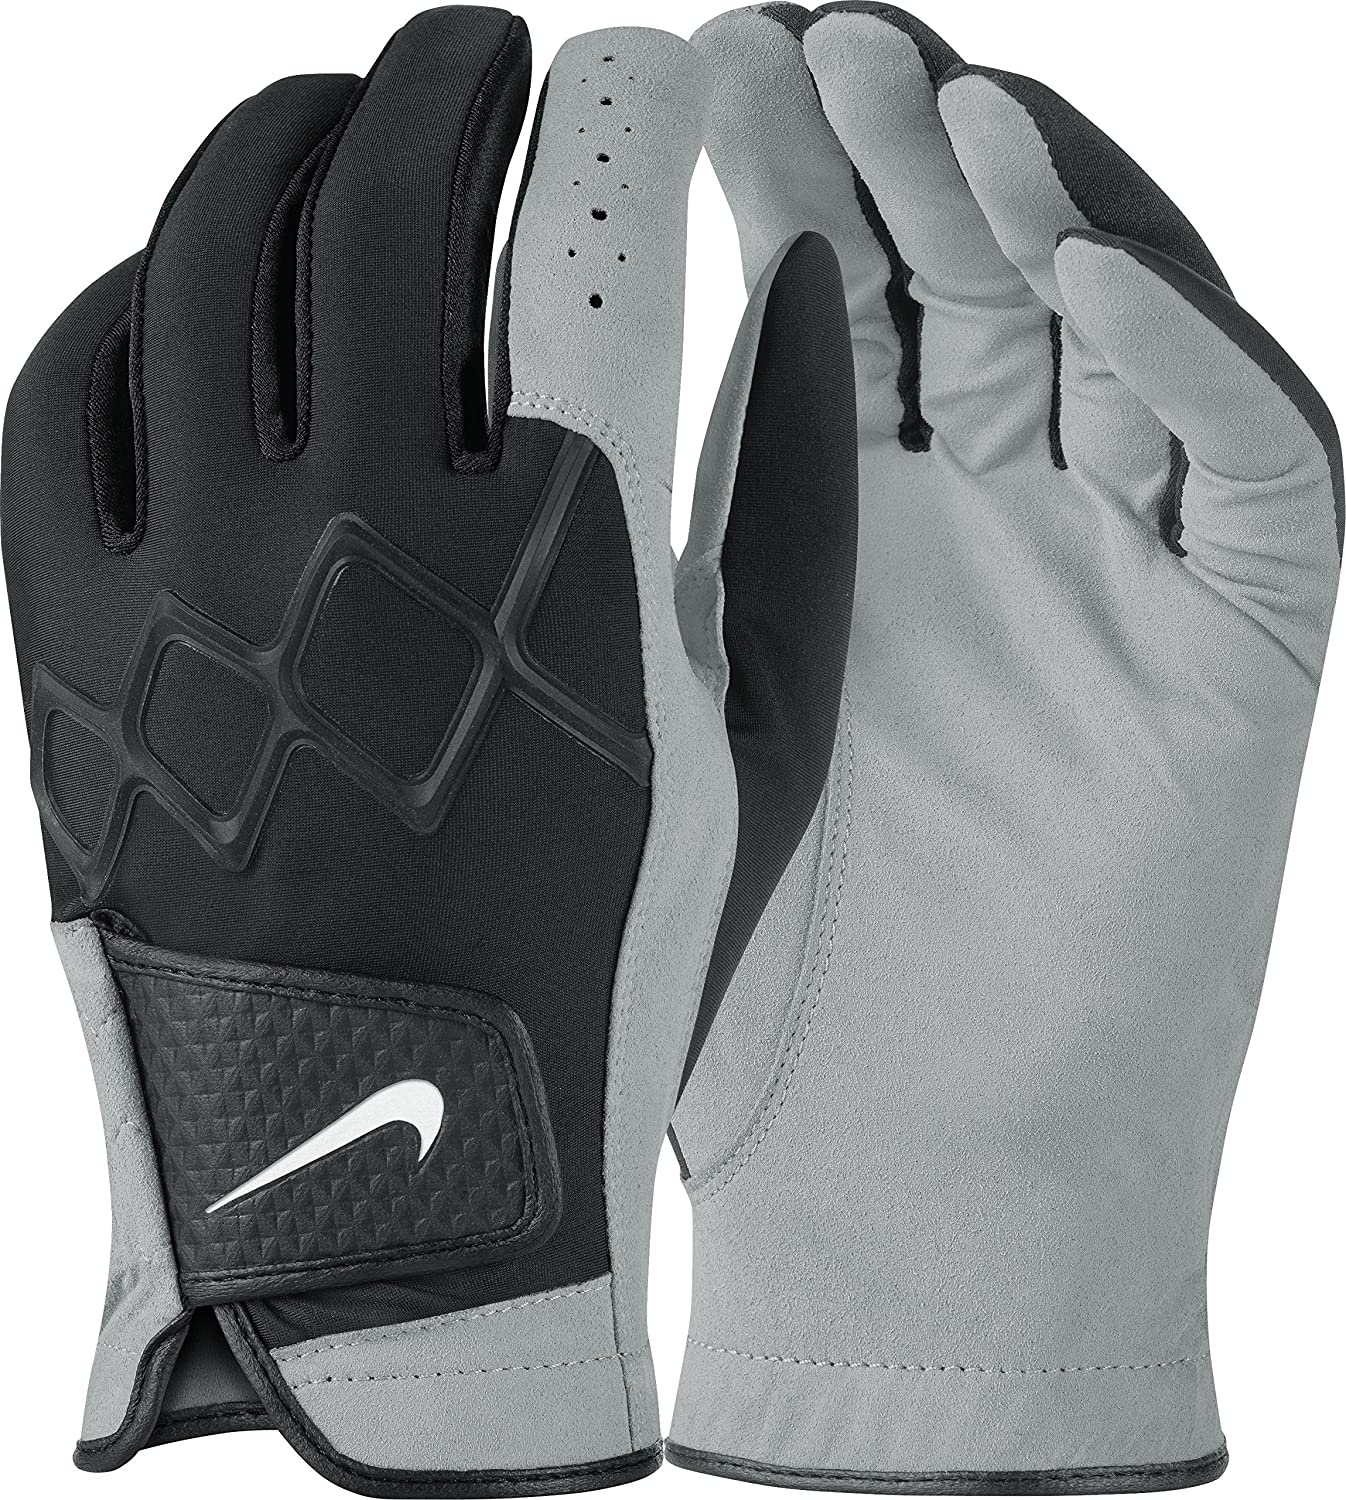 nike golf all weather iii gloves 1 pair sports